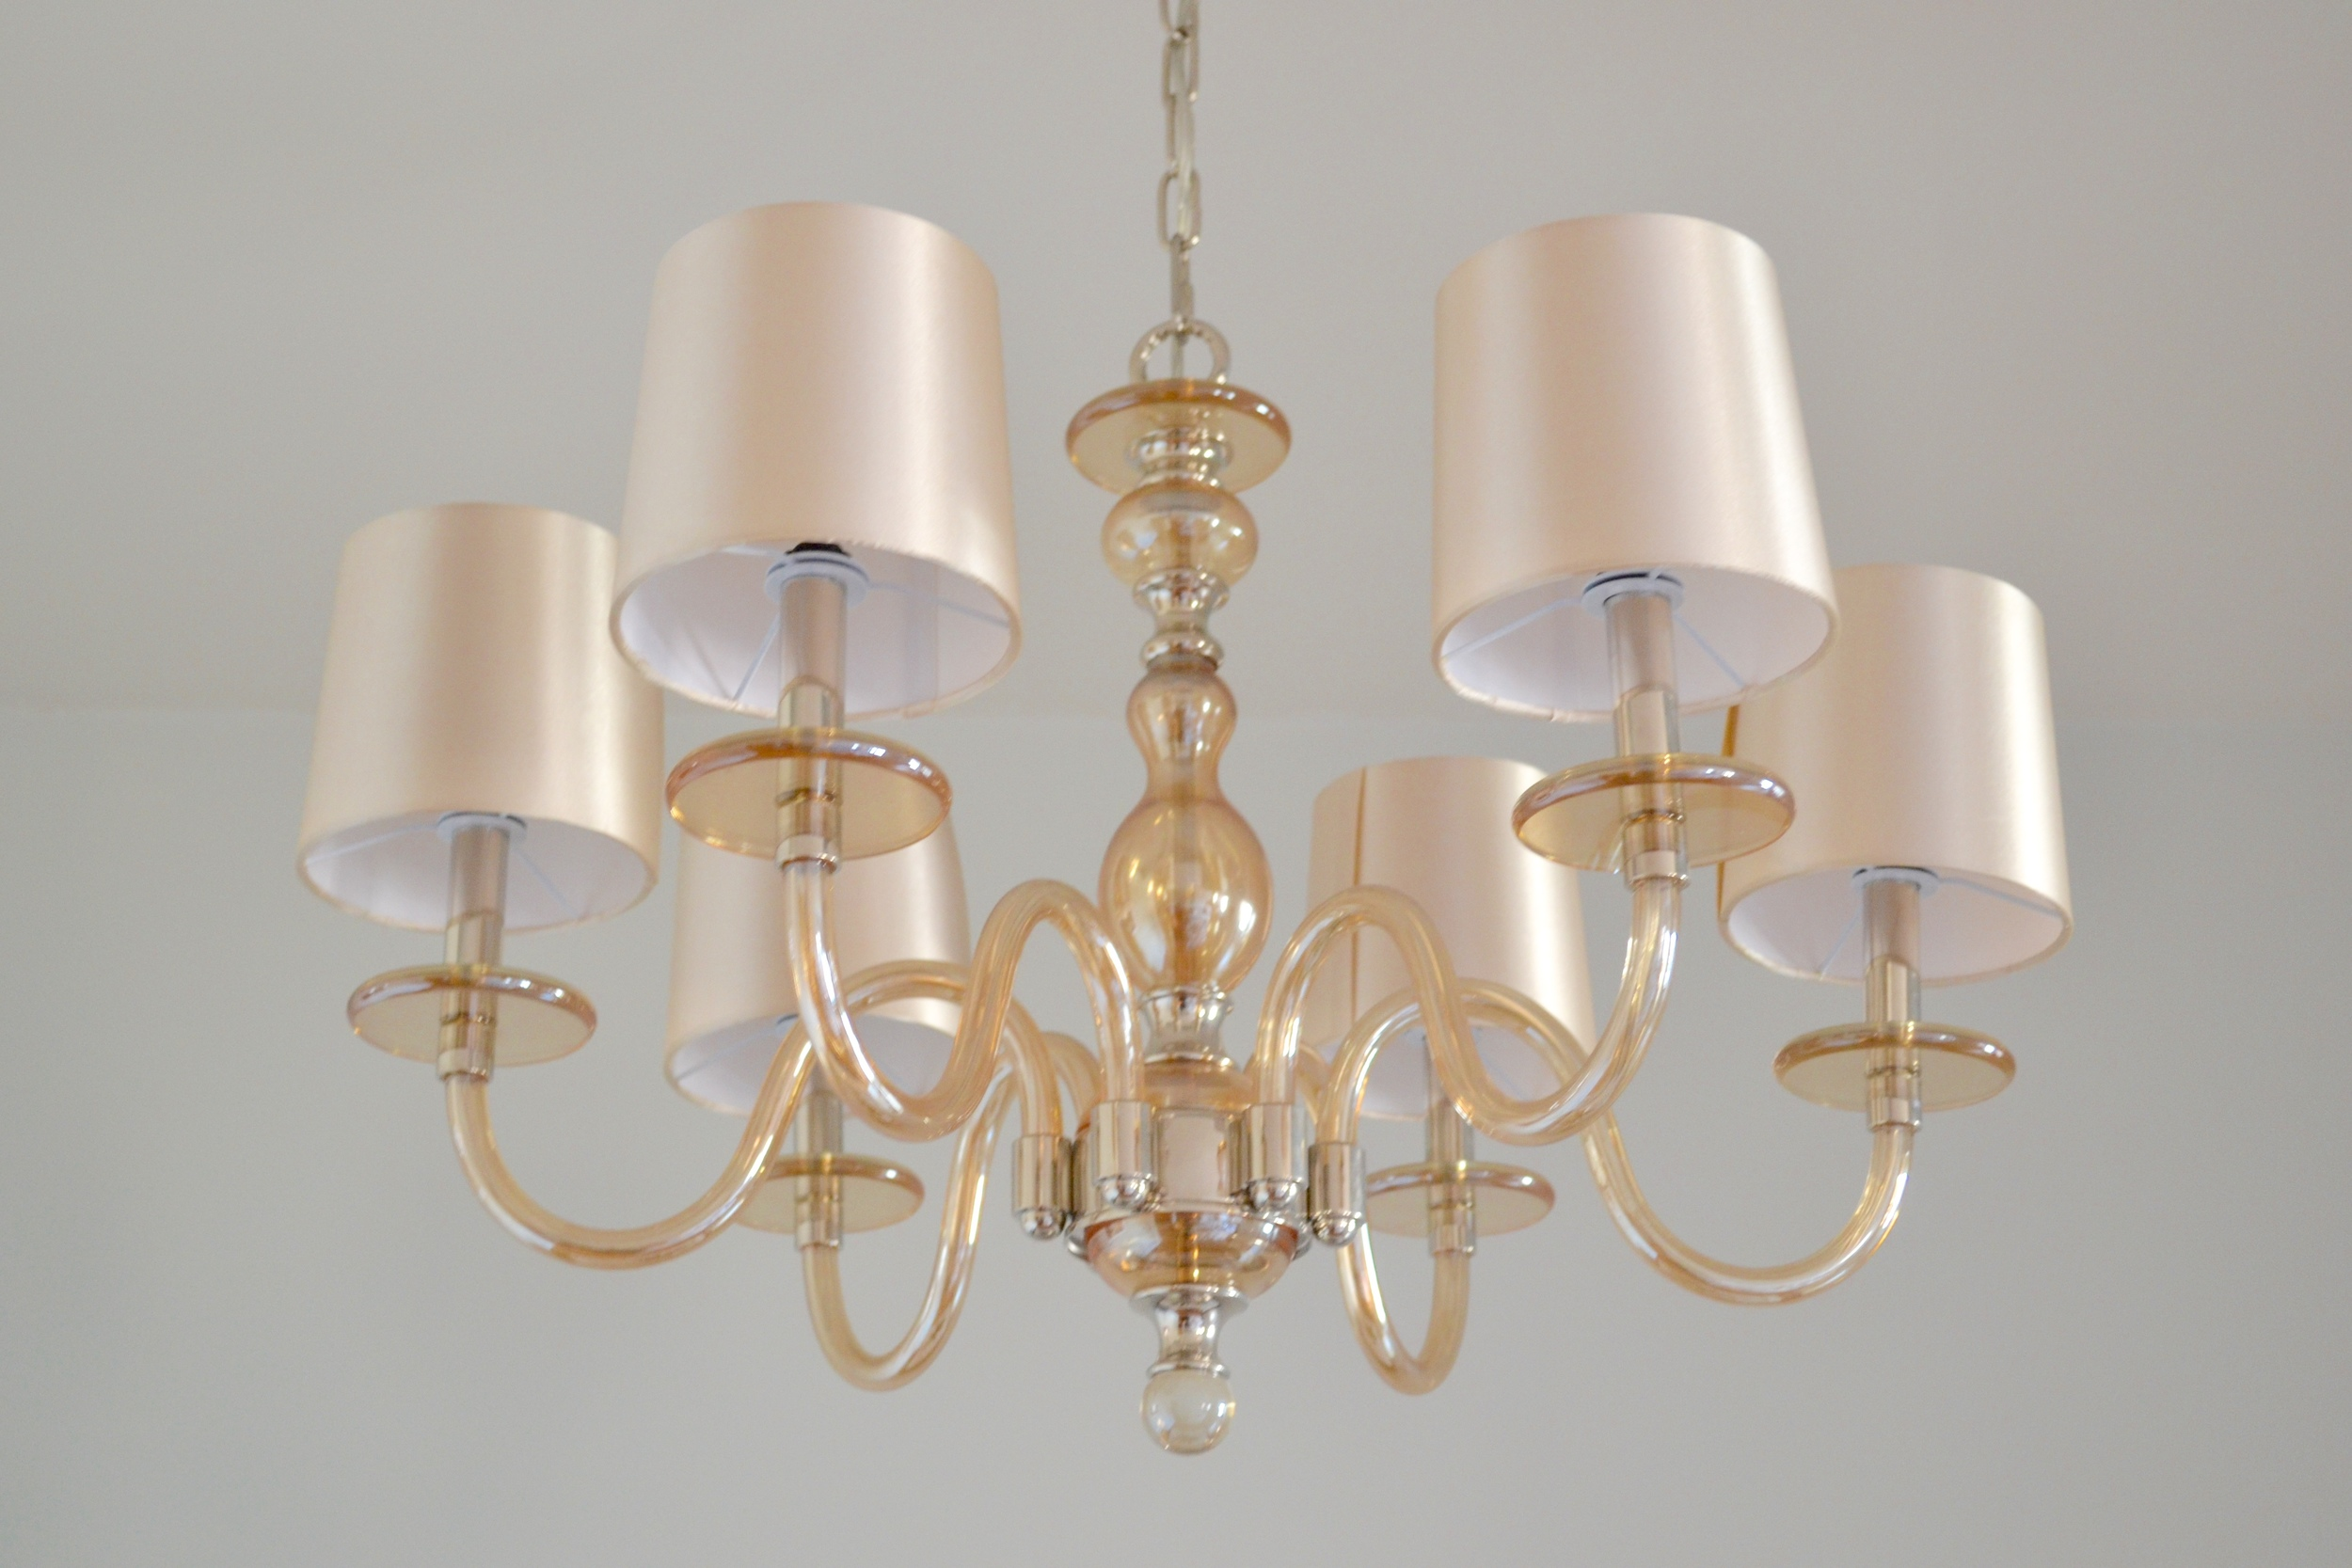 The chandelier (swoon!) was a One Kings Lane find.